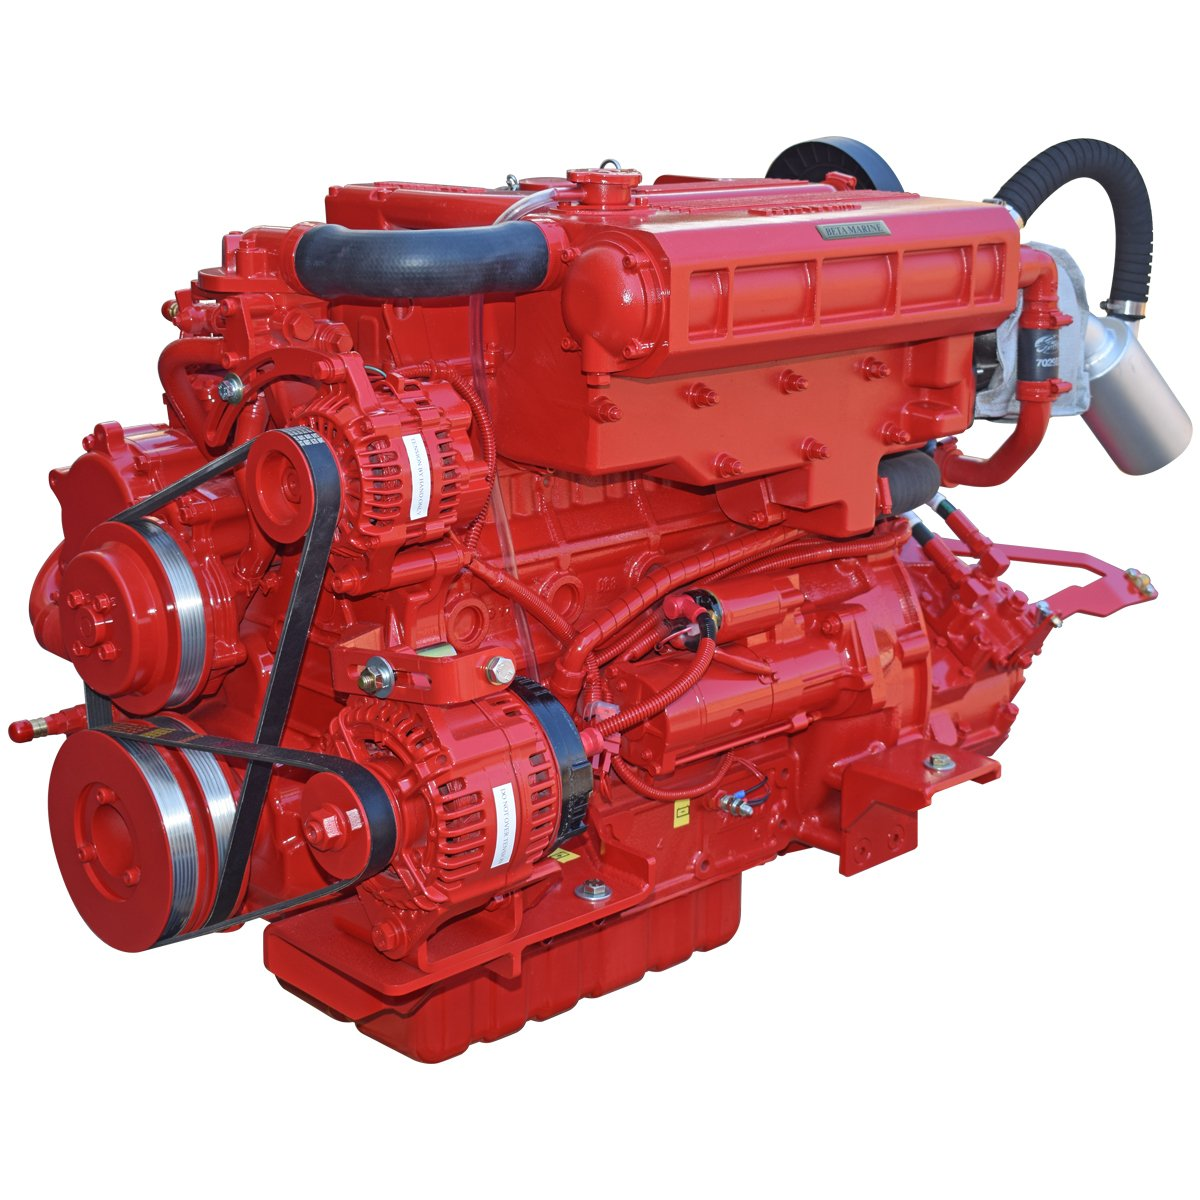 Beta Marine USA - marine diesel propulsion engines - Beta 90T heat exchanger engine